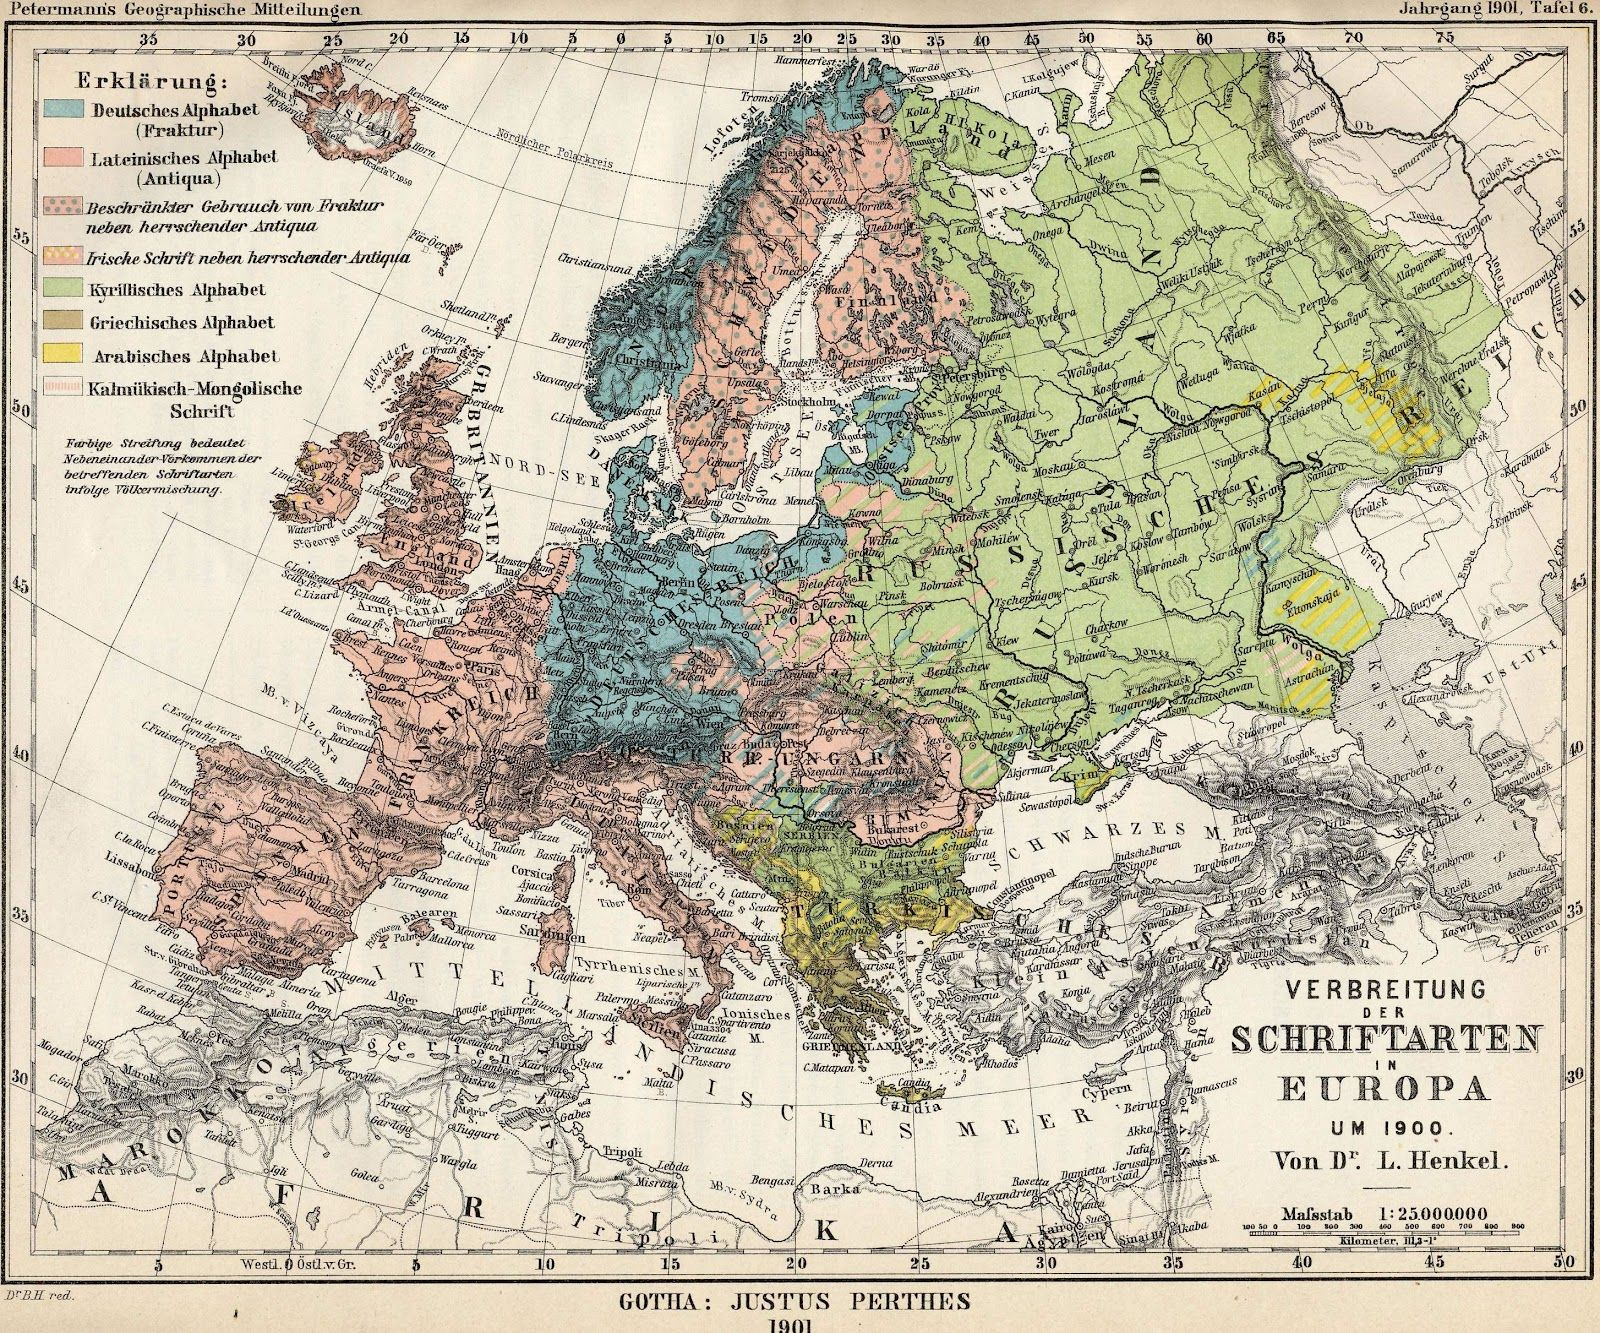 Alphabets used in Europe, 1901 #map #europe